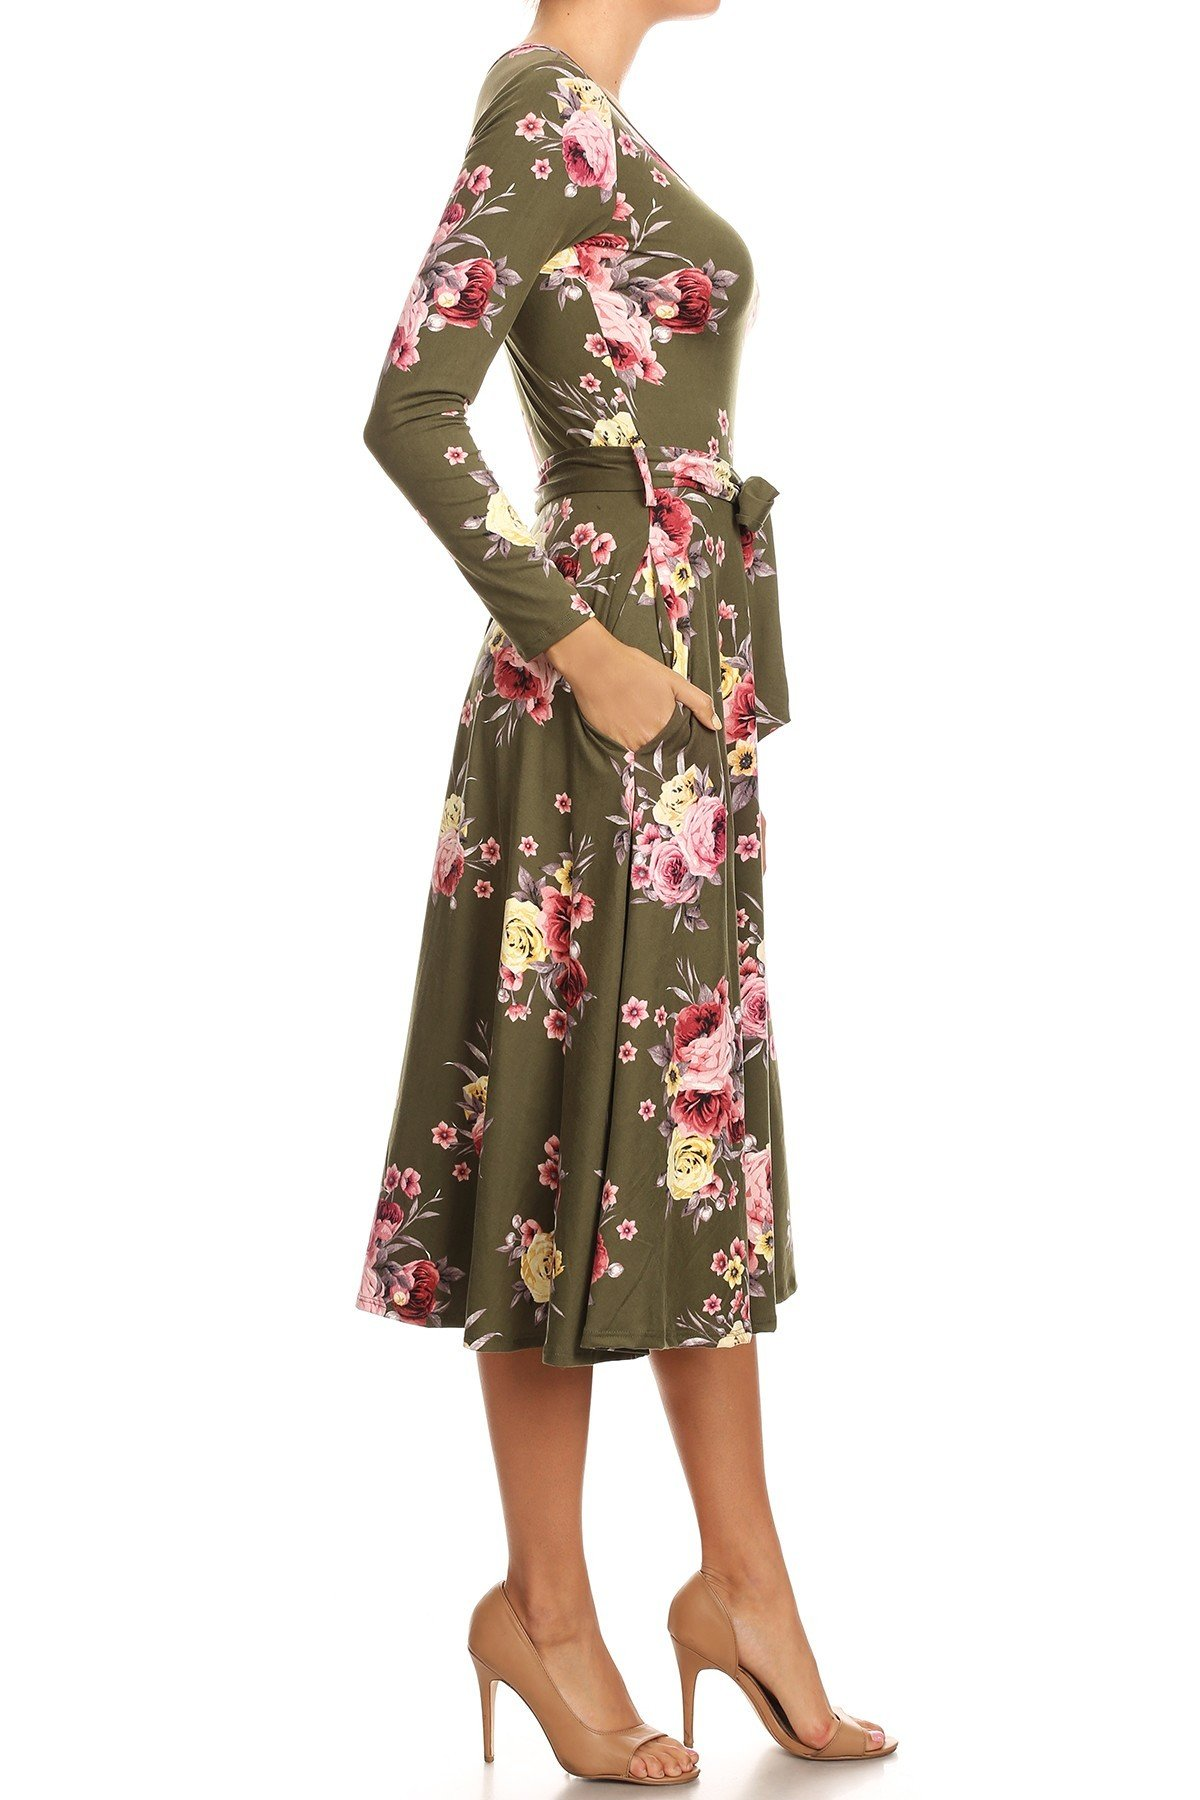 Floral Swing Dress Side View